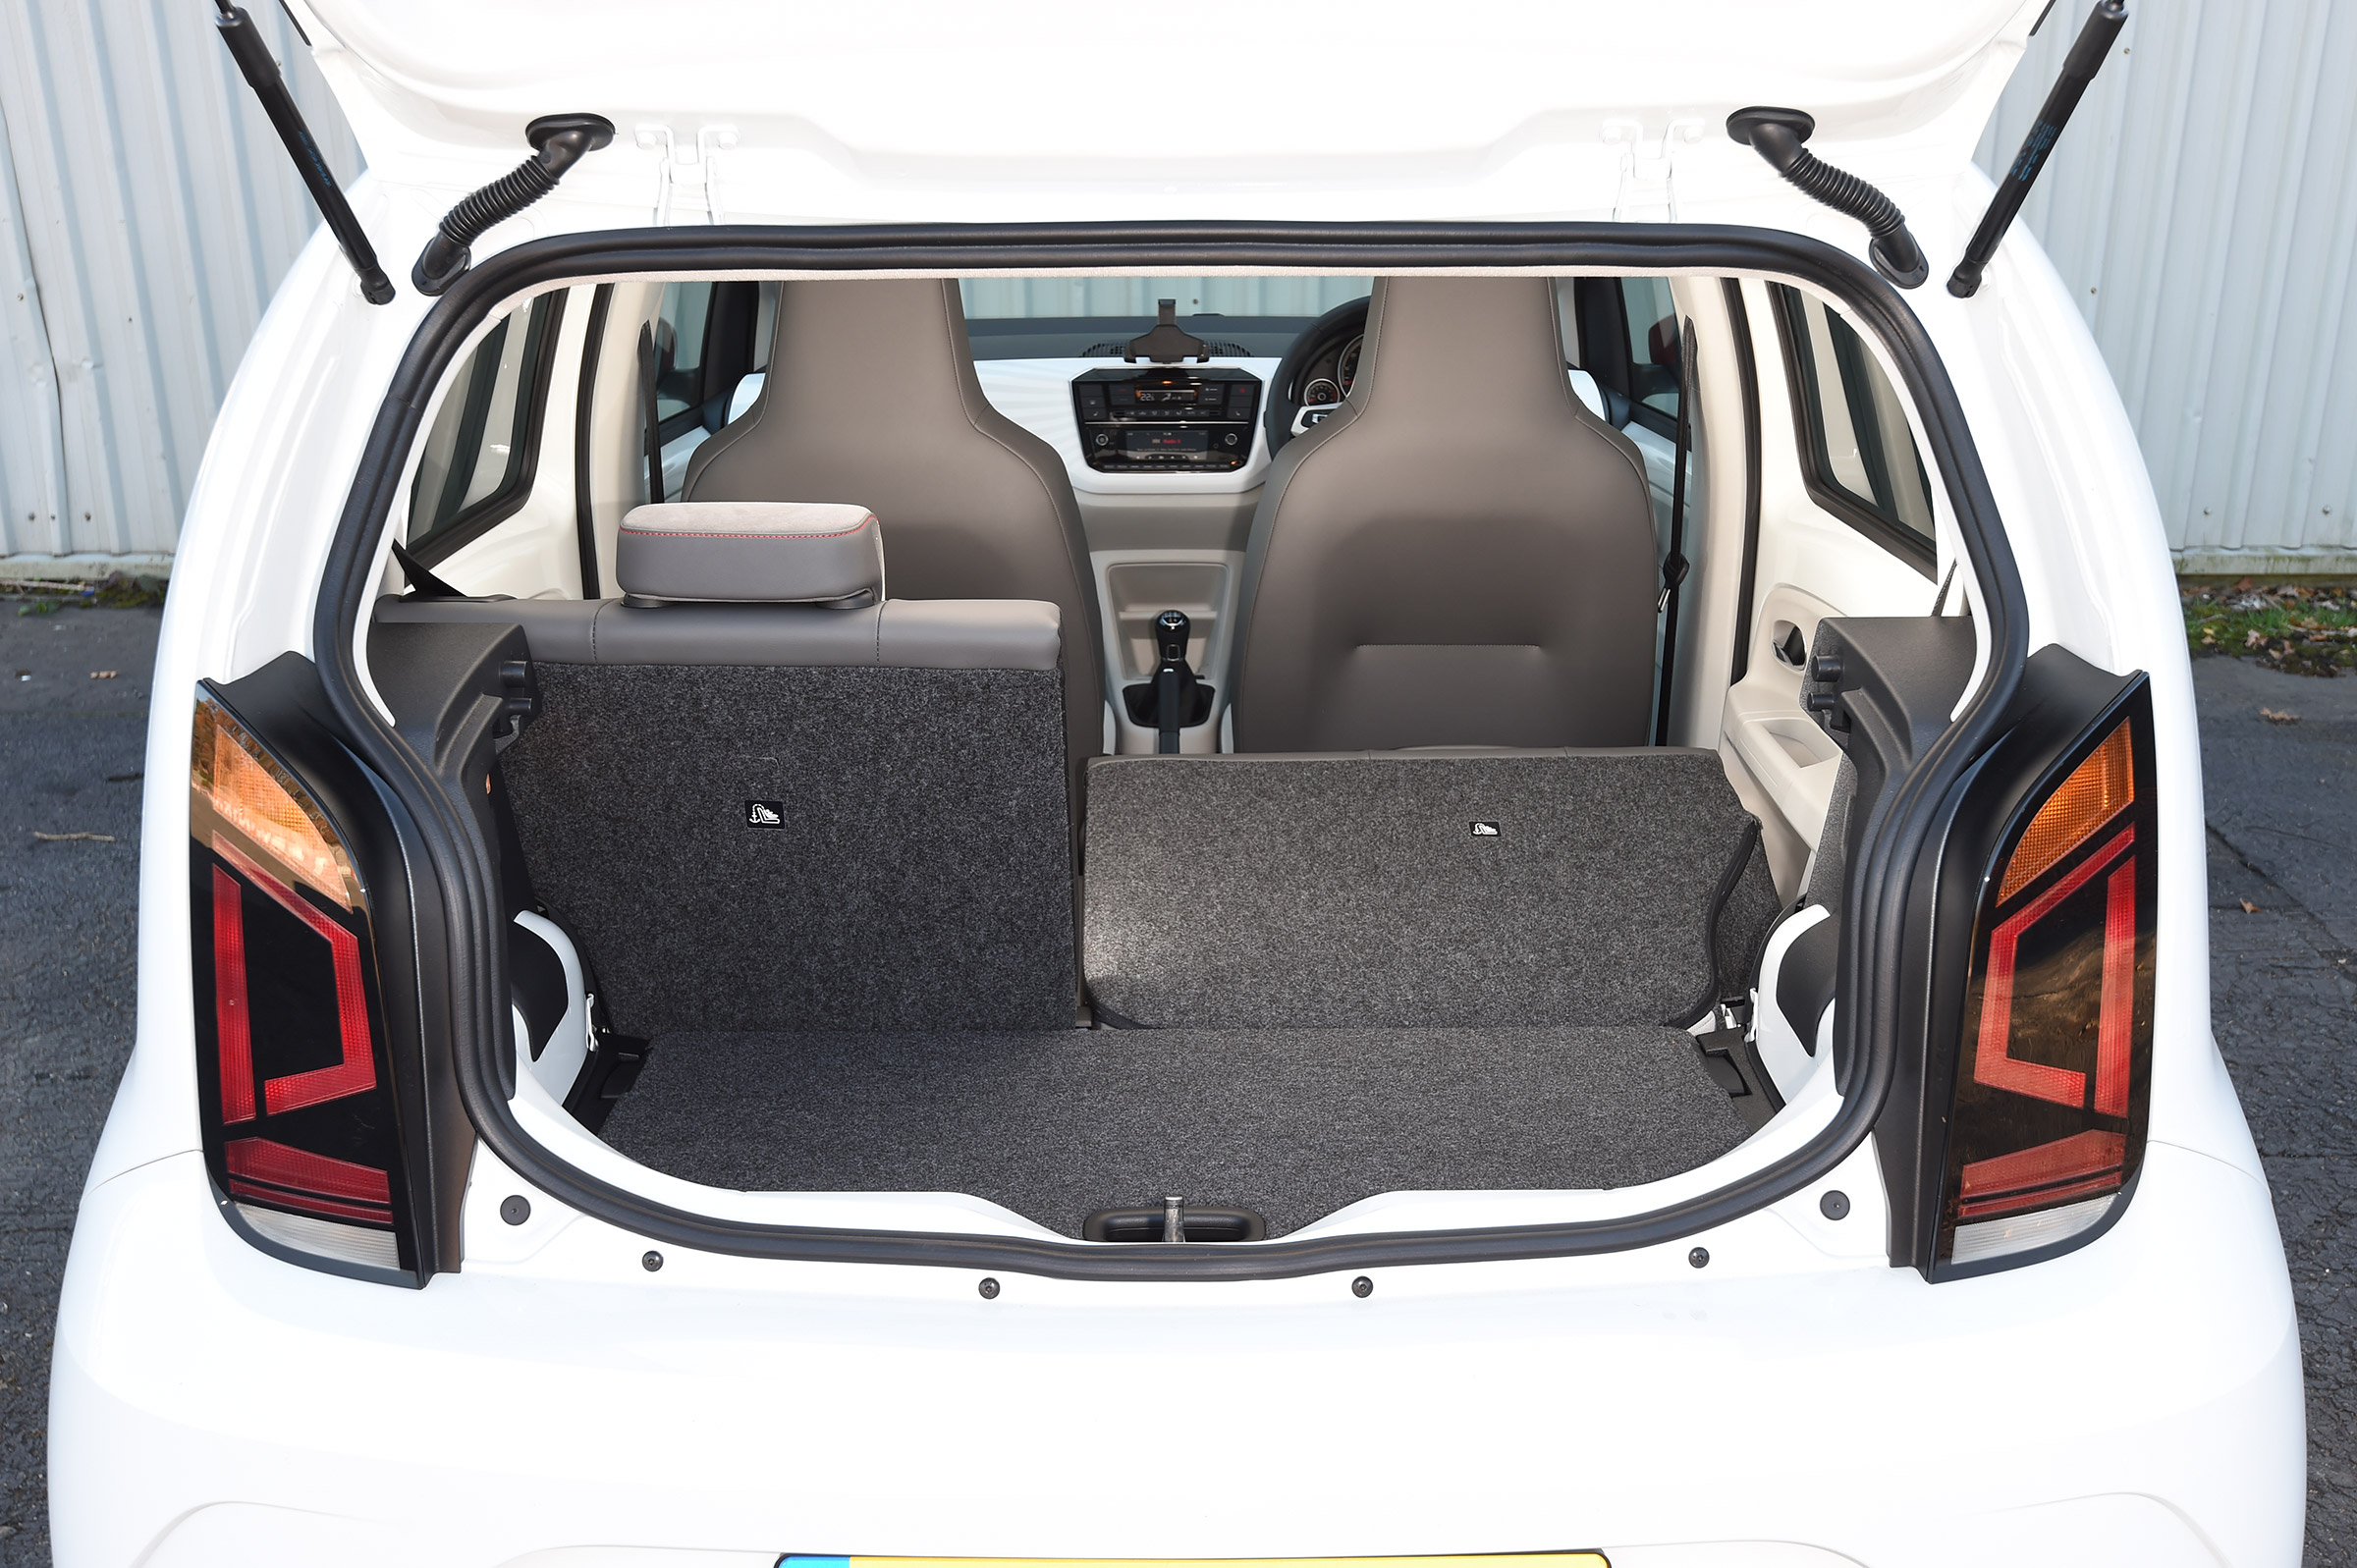 2017 Volkswagen Up Interior View Cargo (Photo 9 of 15)